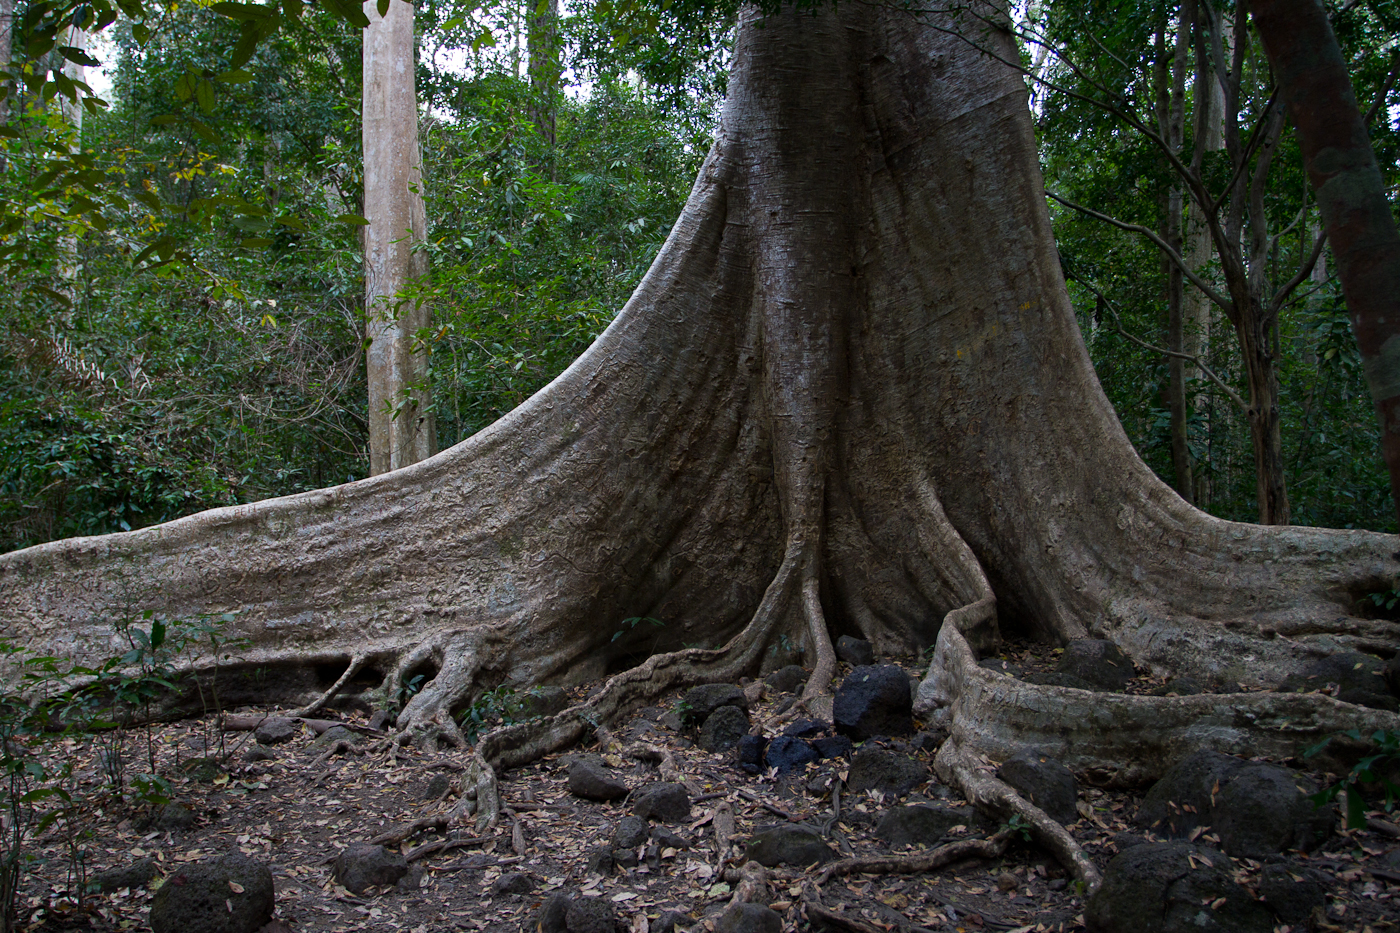 Huge Ficus tree roots were everywhere in Cat Tien National Park.